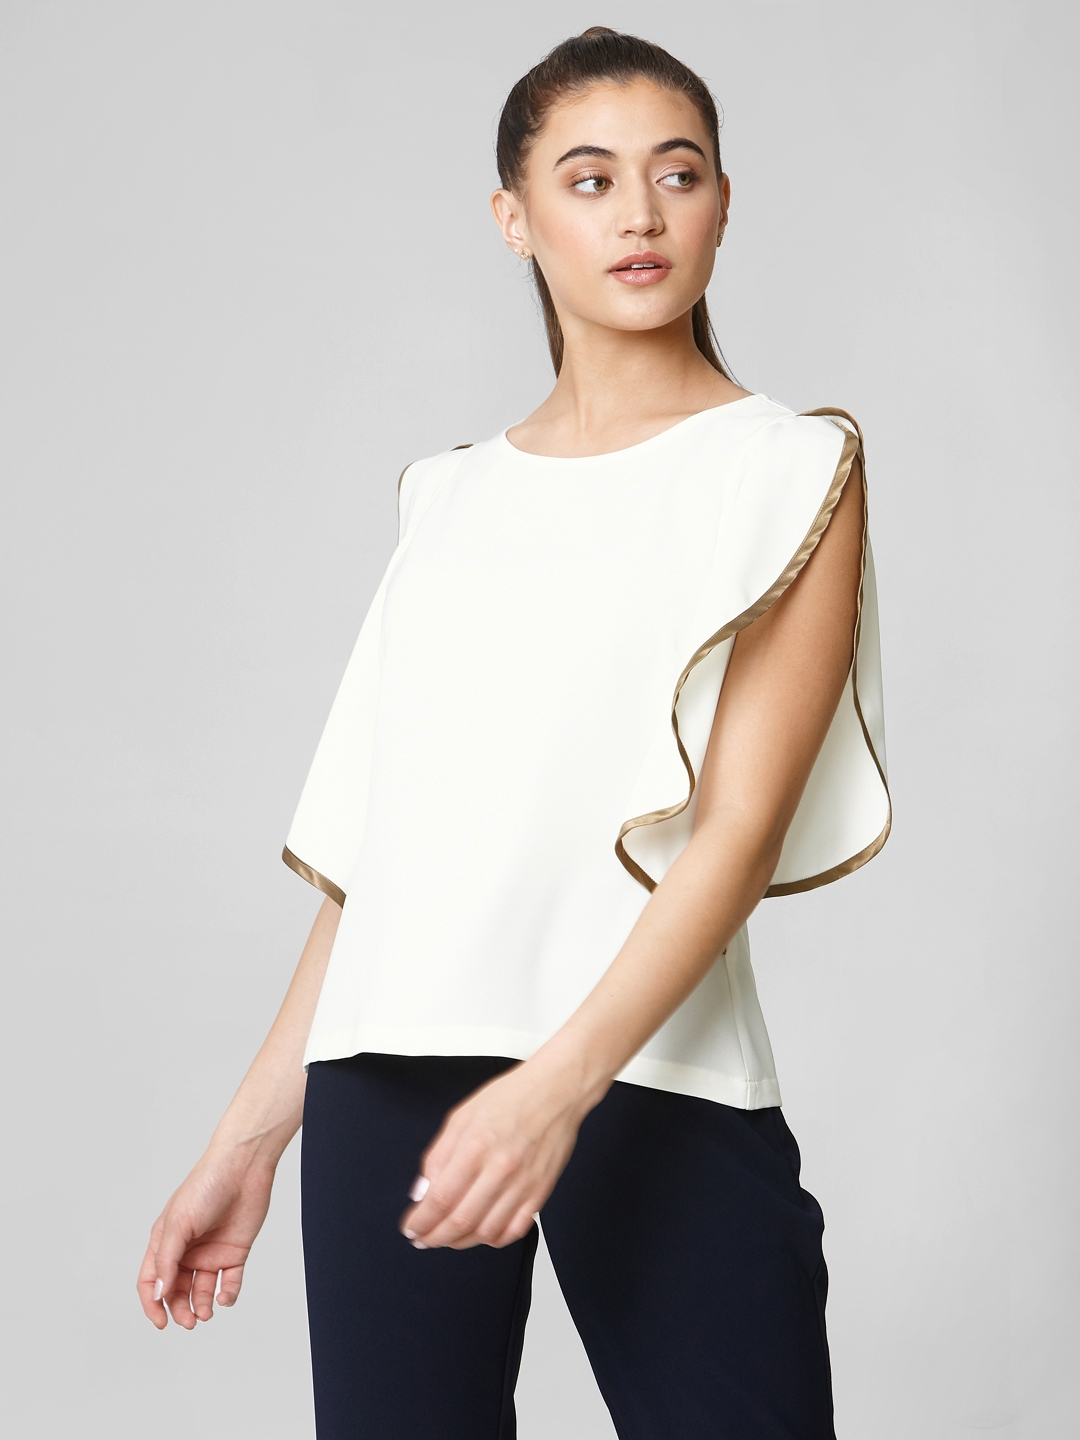 Vero Moda Women White Solid Top With Slit Sleeves